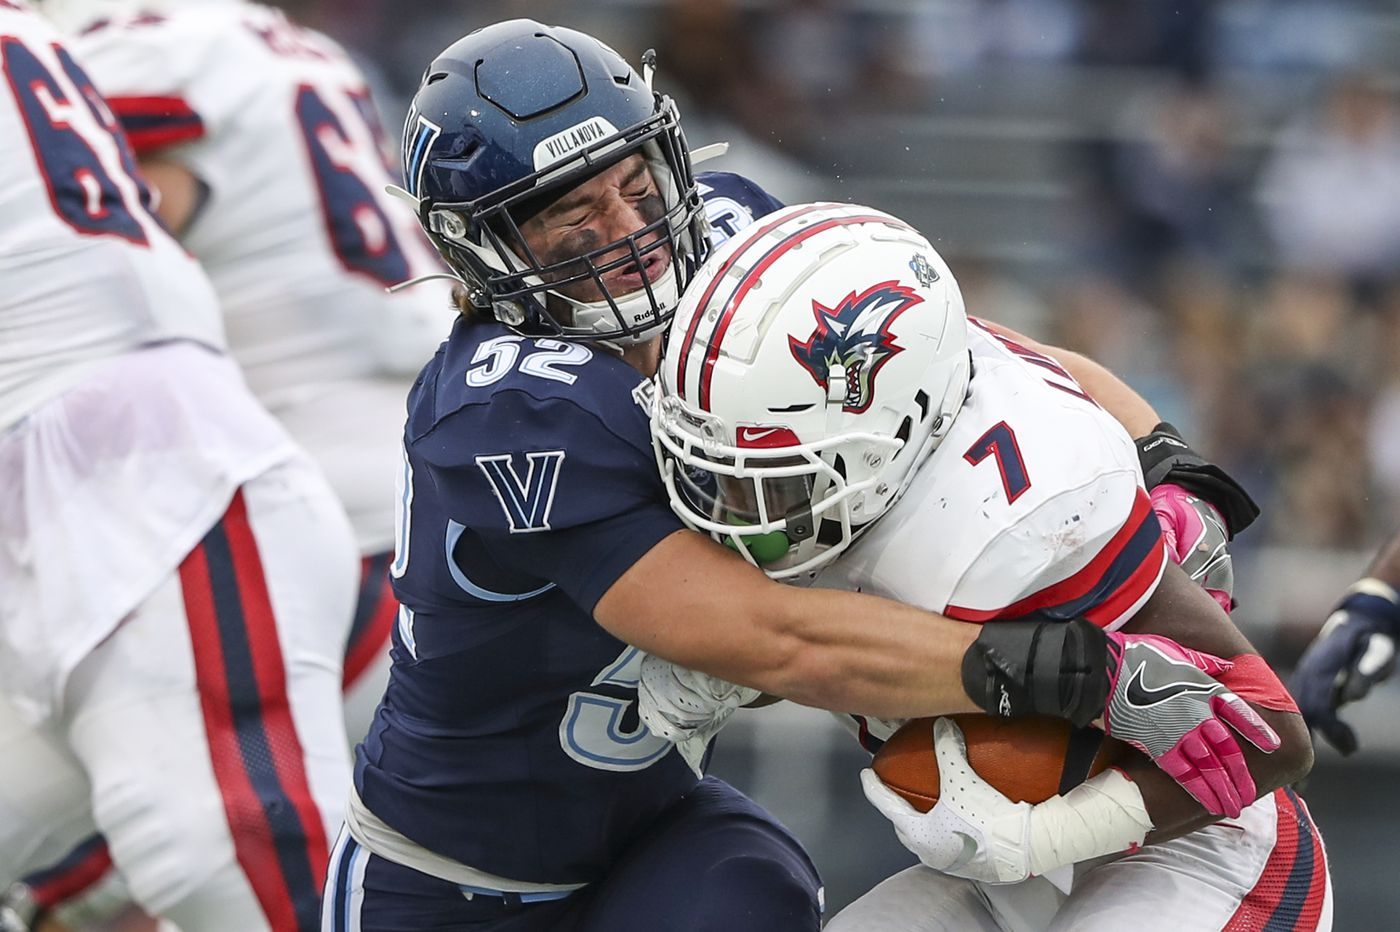 Villanova dominates Richmond in fourth quarter to snap three-game losing streak